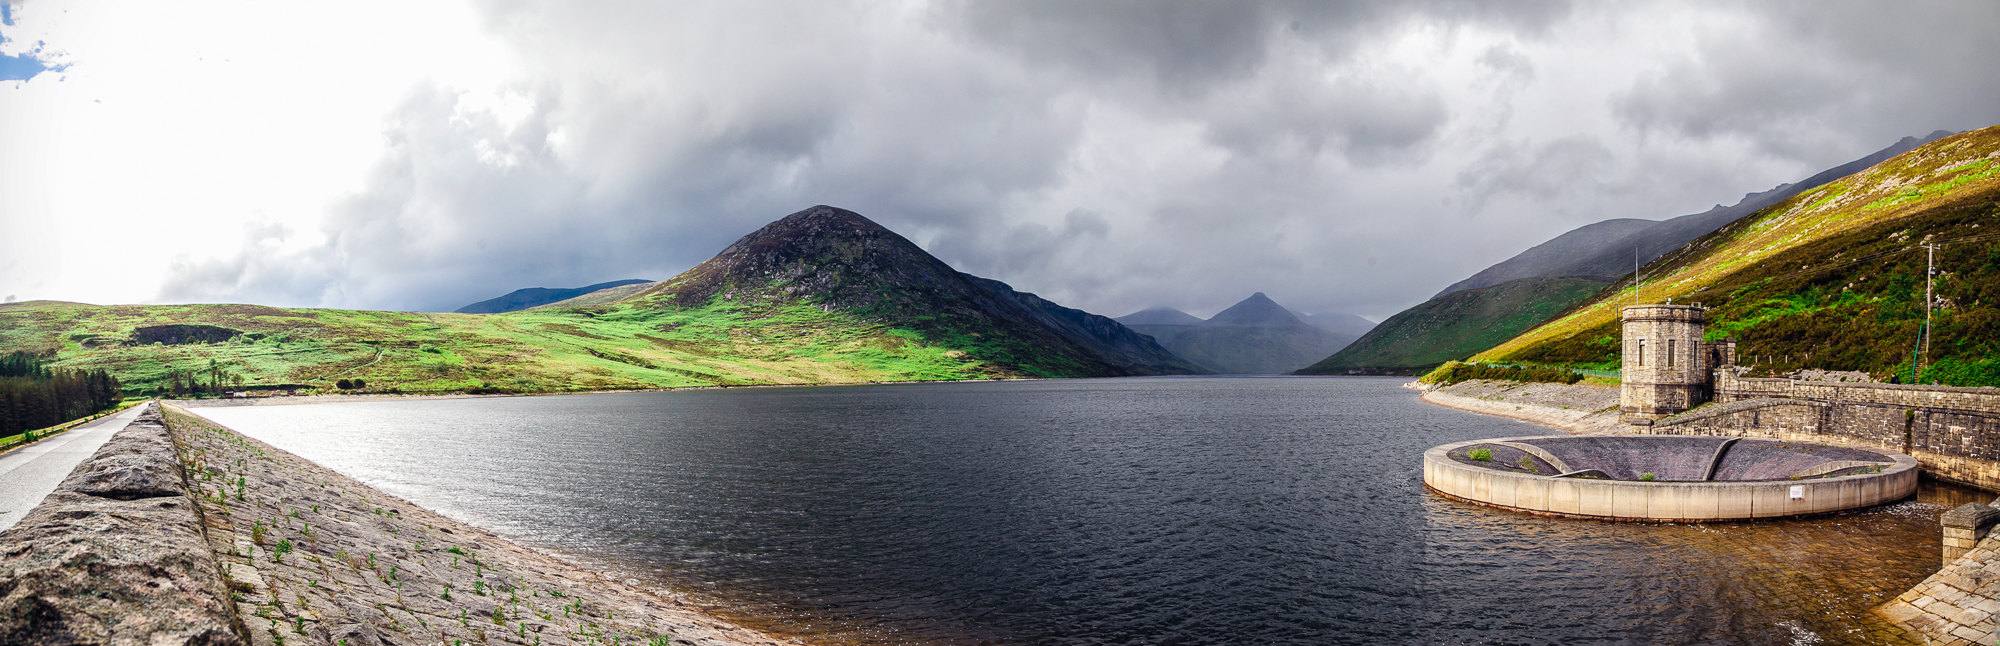 Mourne_Mountains_21